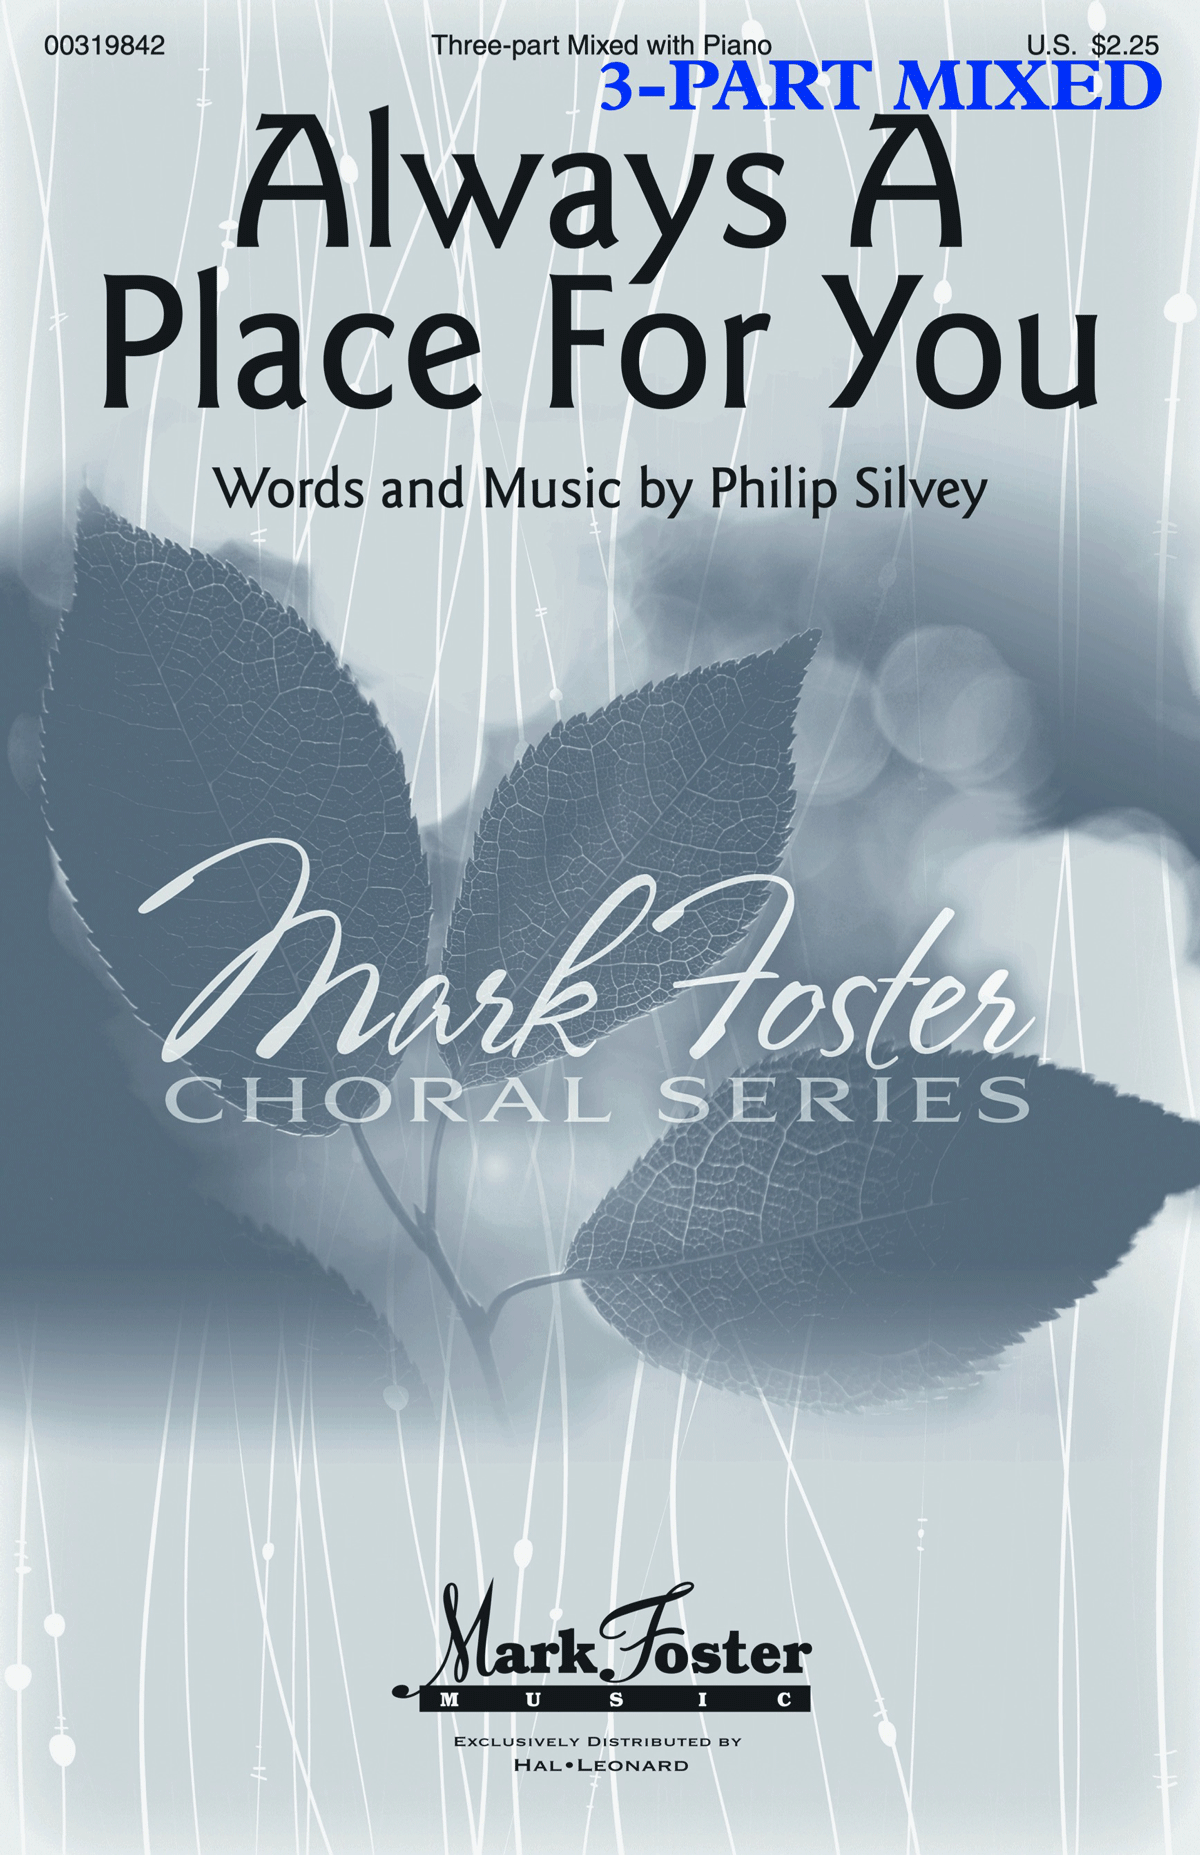 Always a Place for You - 3-Part Mixed - choral score cover